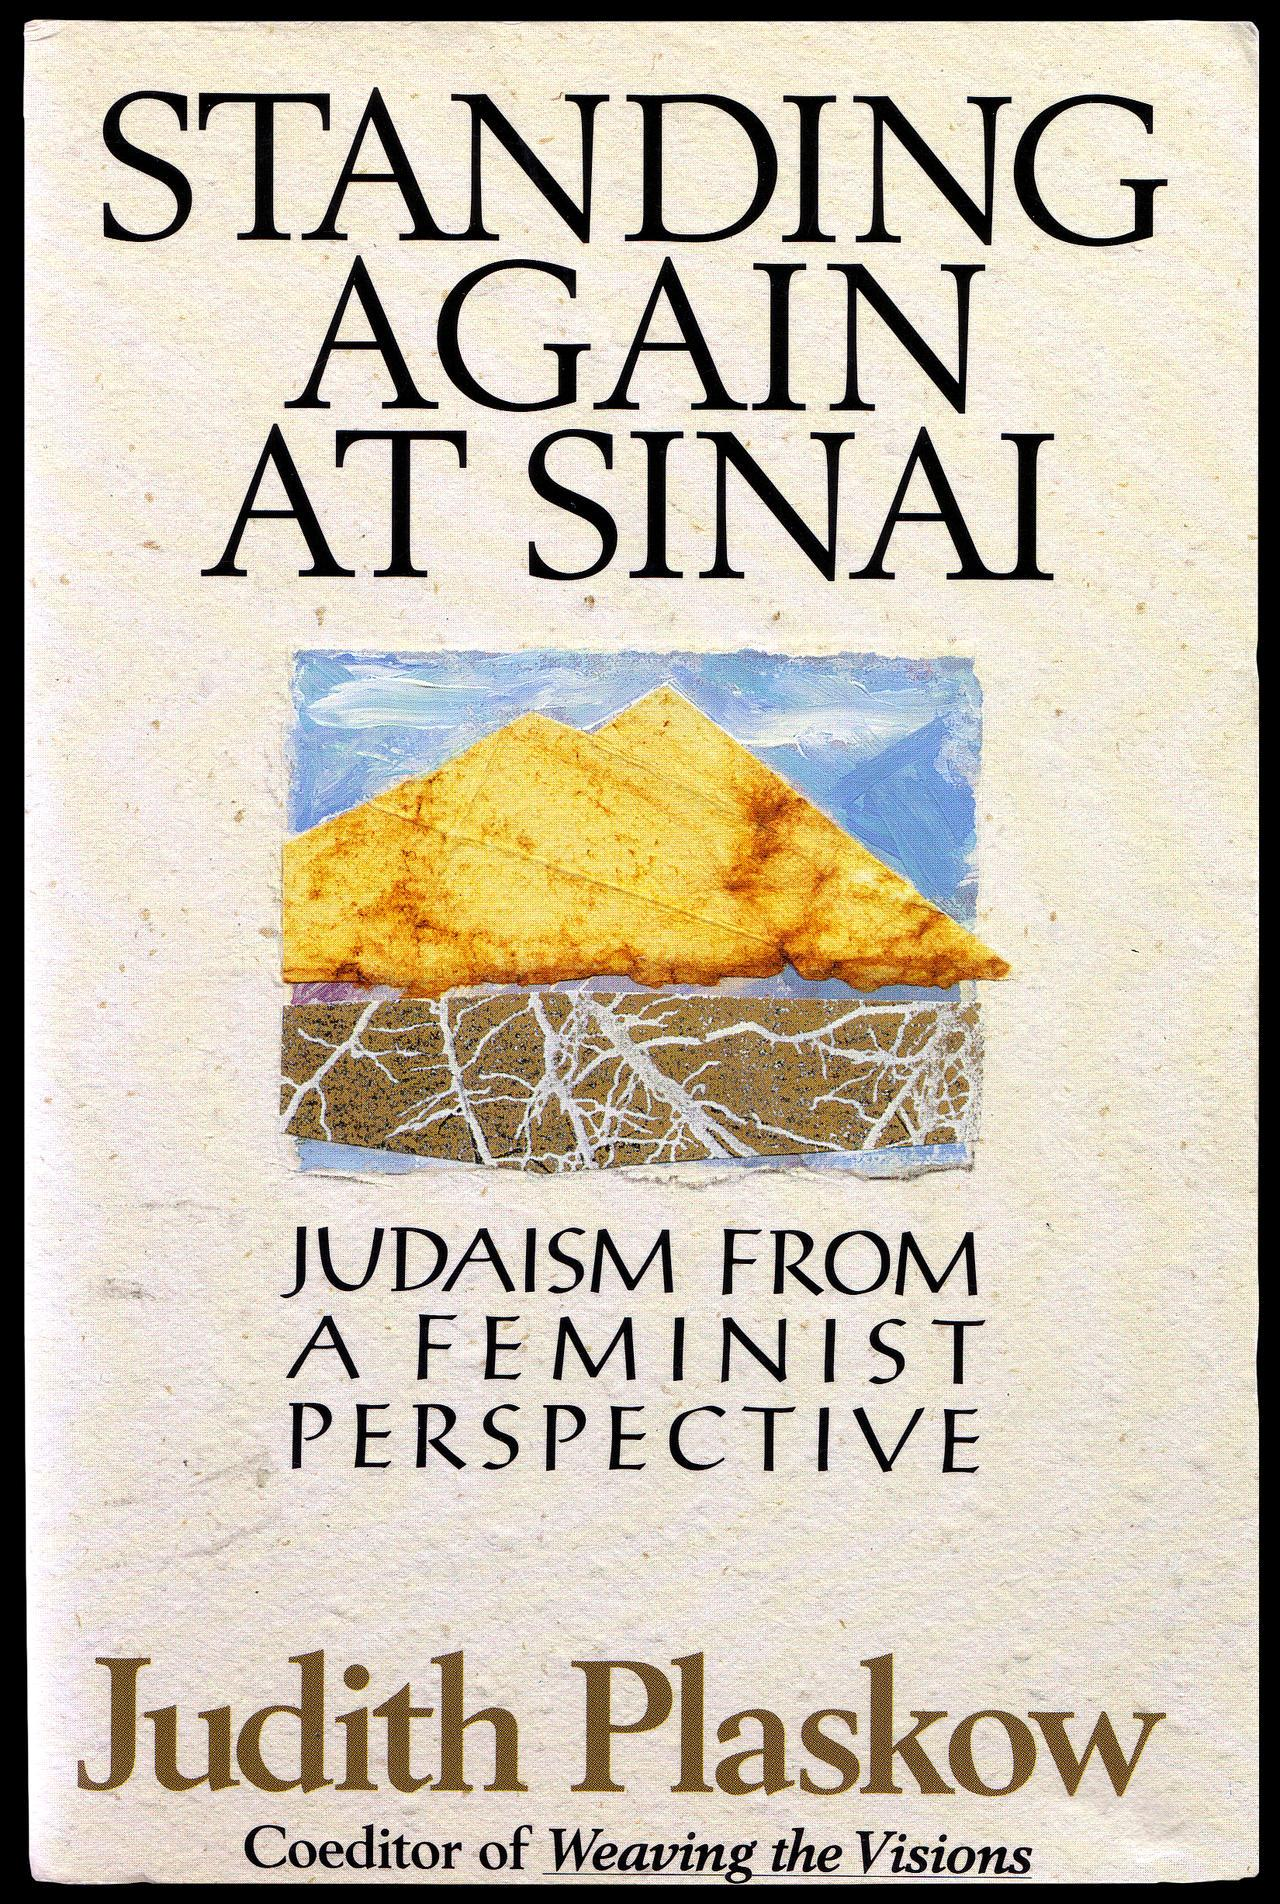 Standing Again at Sinai by Judith Plaskow cover